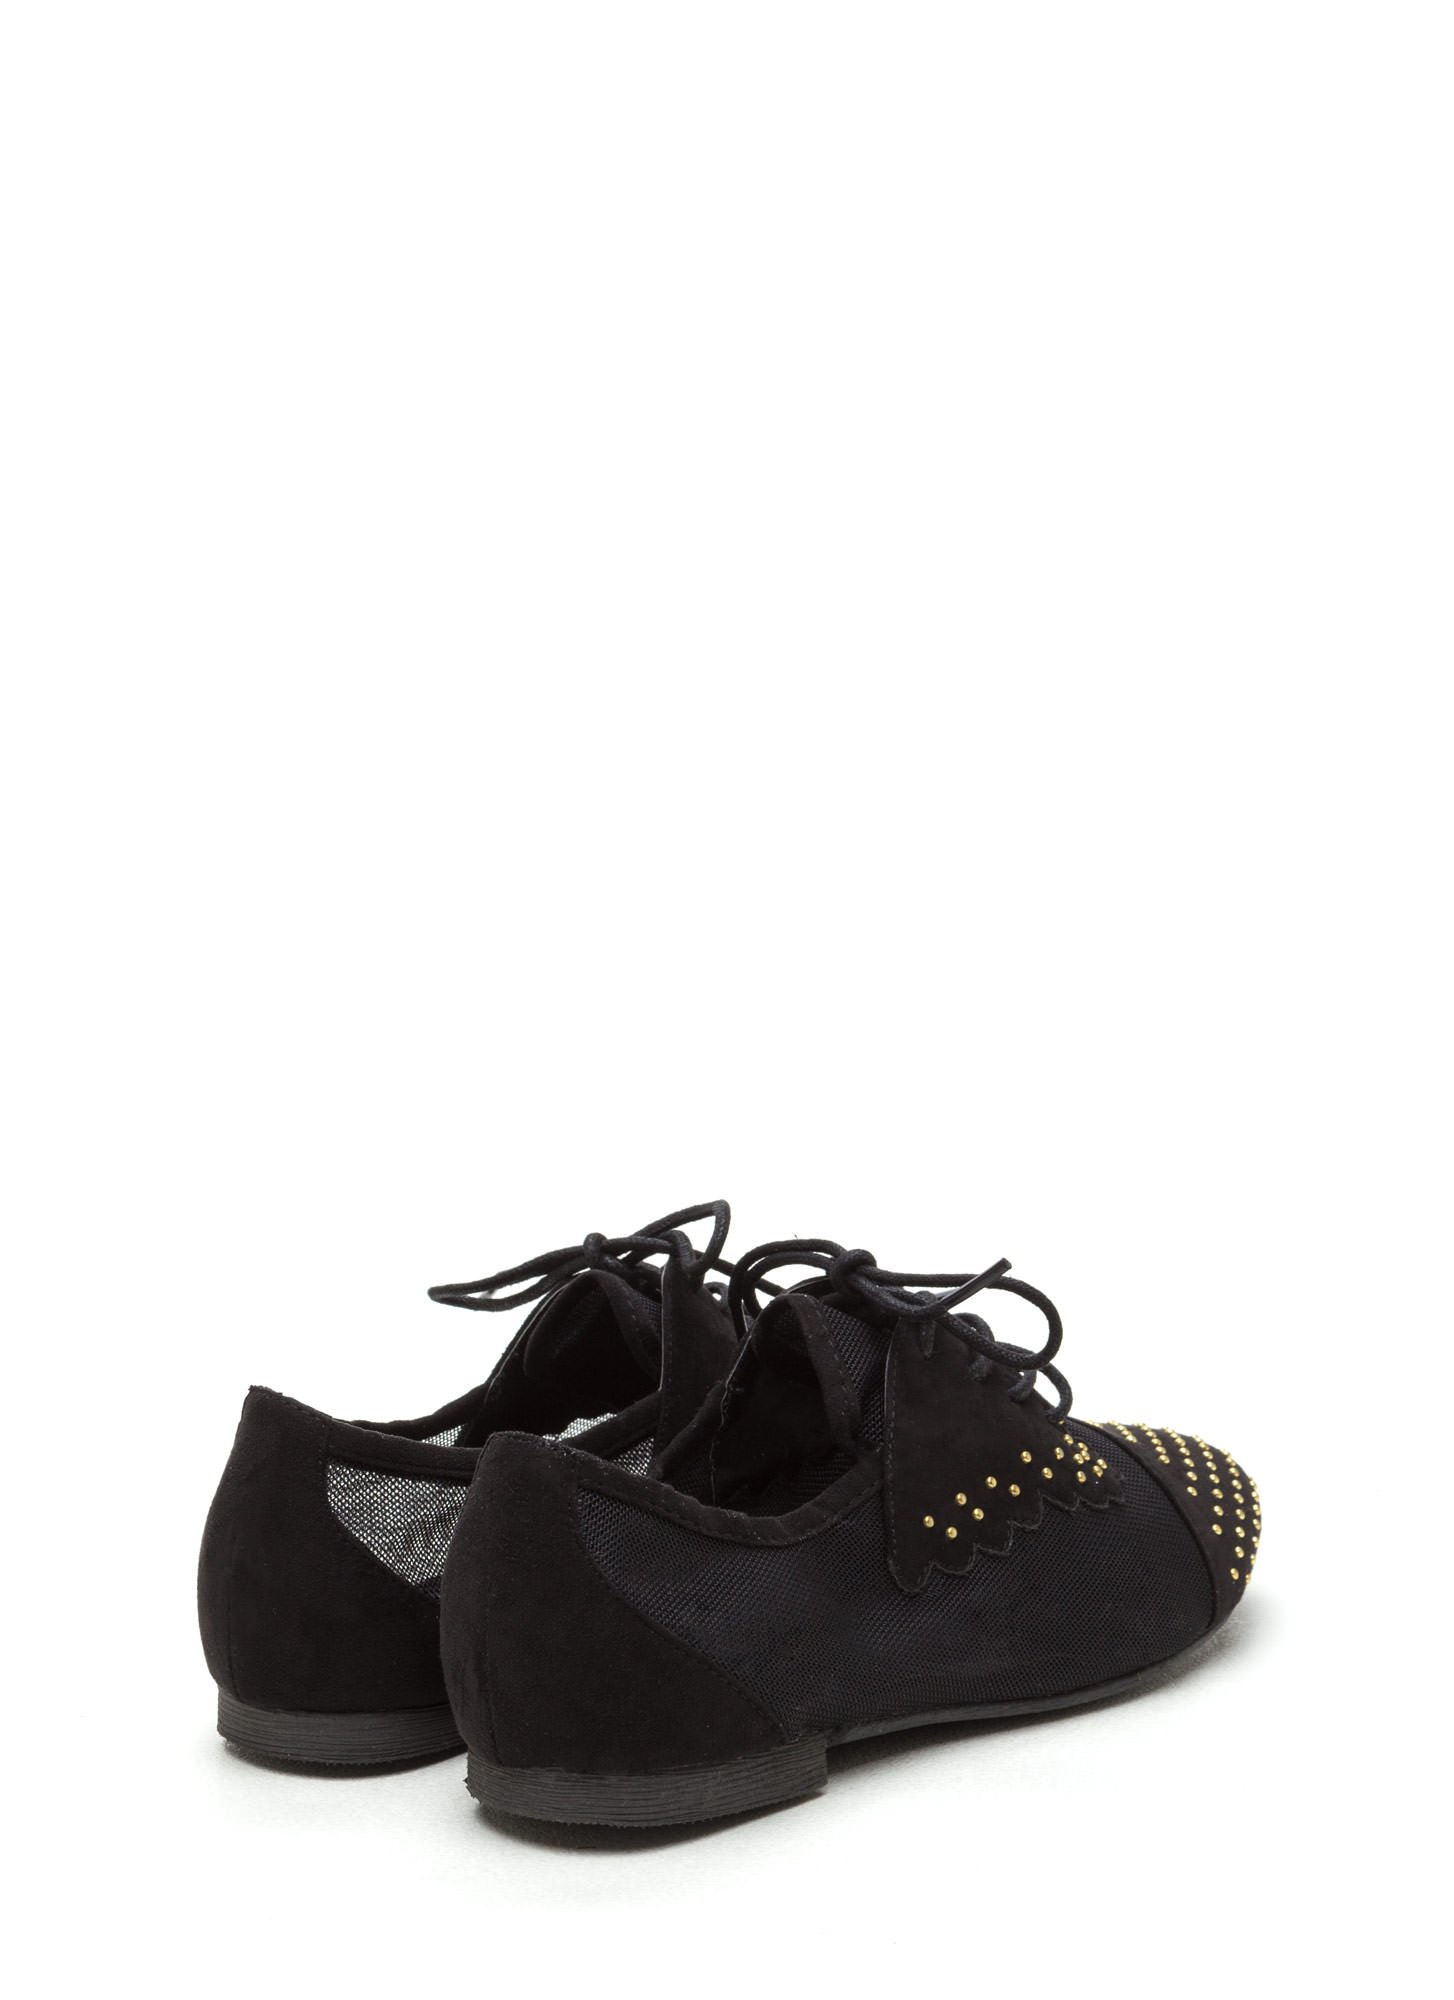 Mesh-Behaving Studded Lace-Up Flats BLACK